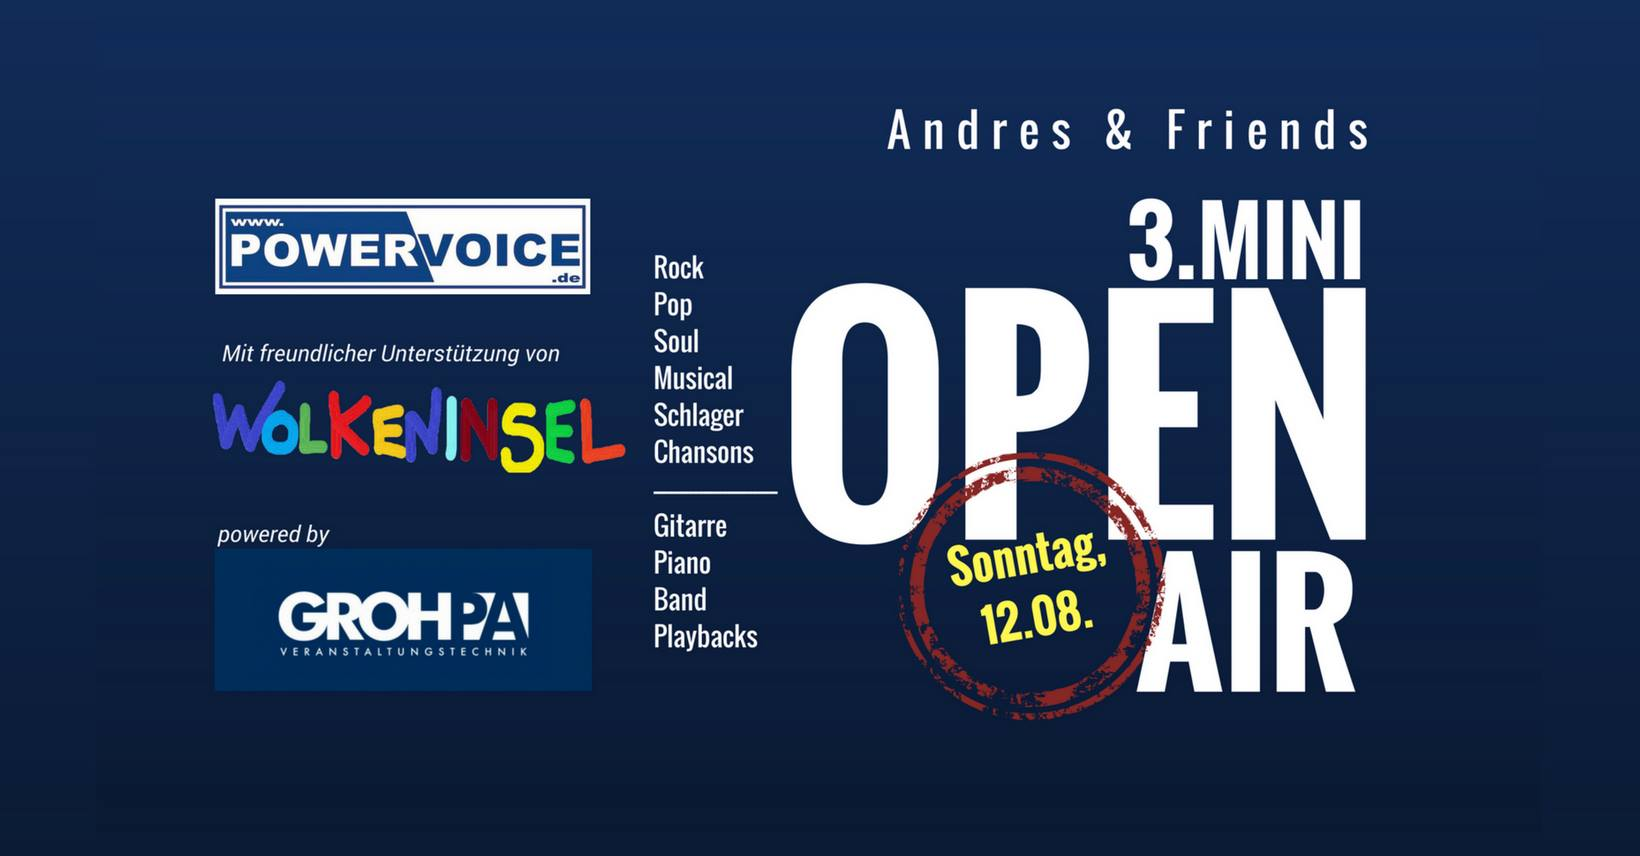 3. Mini Open Air_ Andres & Friends - Der Rock´n`Roll Hänger kommt